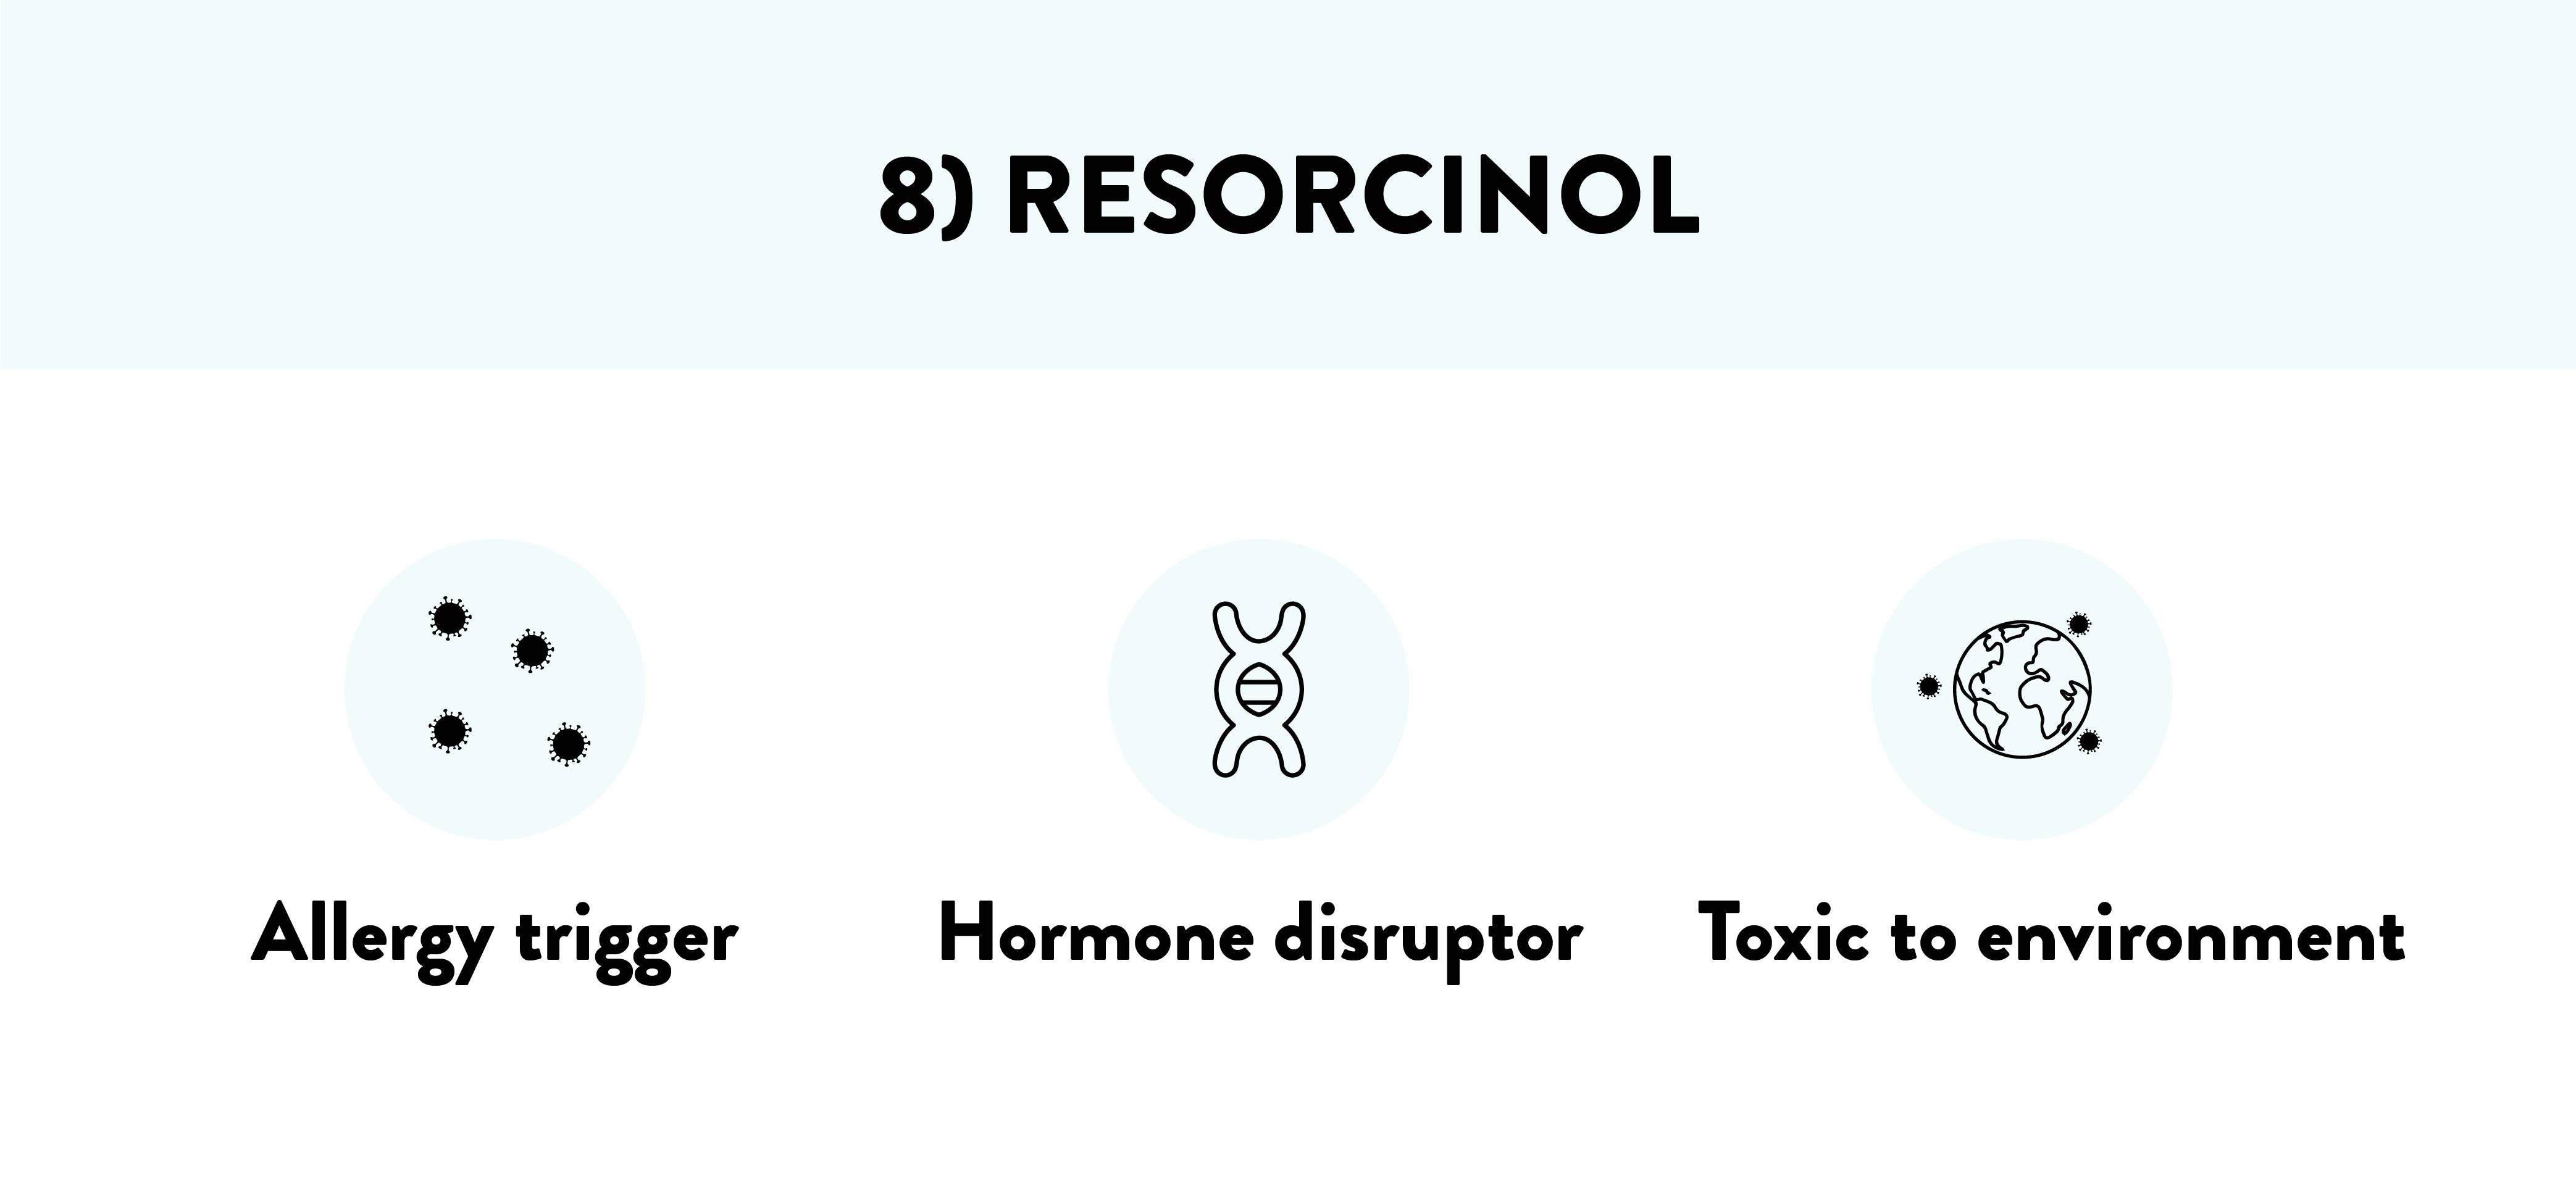 This is an image of resorcinol